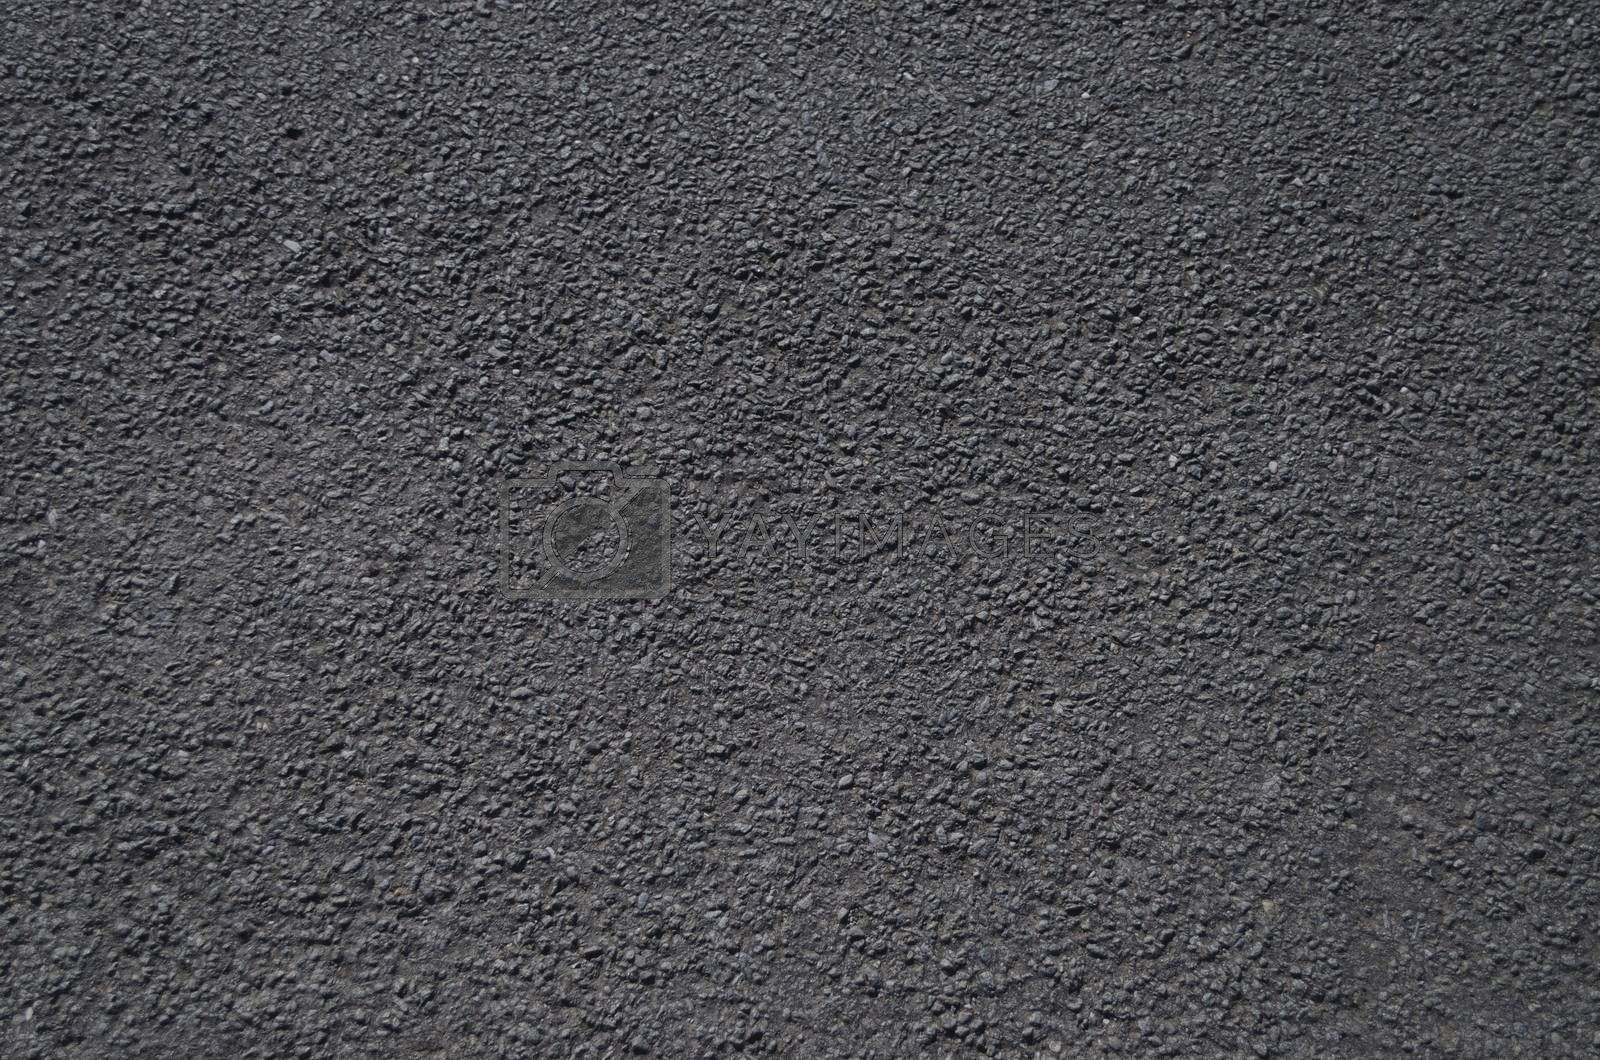 Royalty free image of Road surface by JohnDavidPhoto